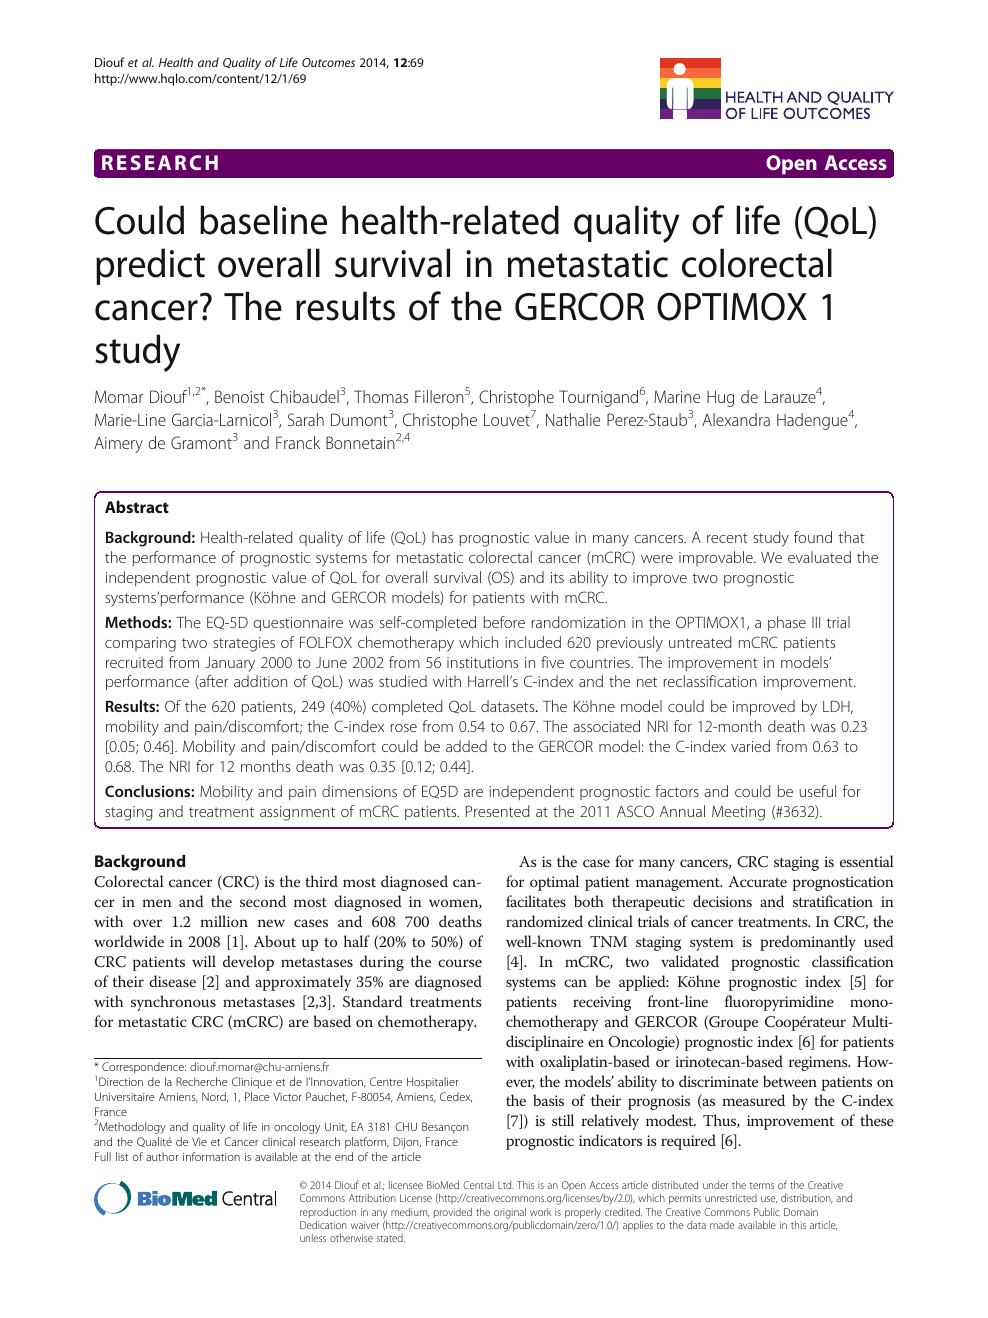 Could baseline health-related quality of life (QoL) predict